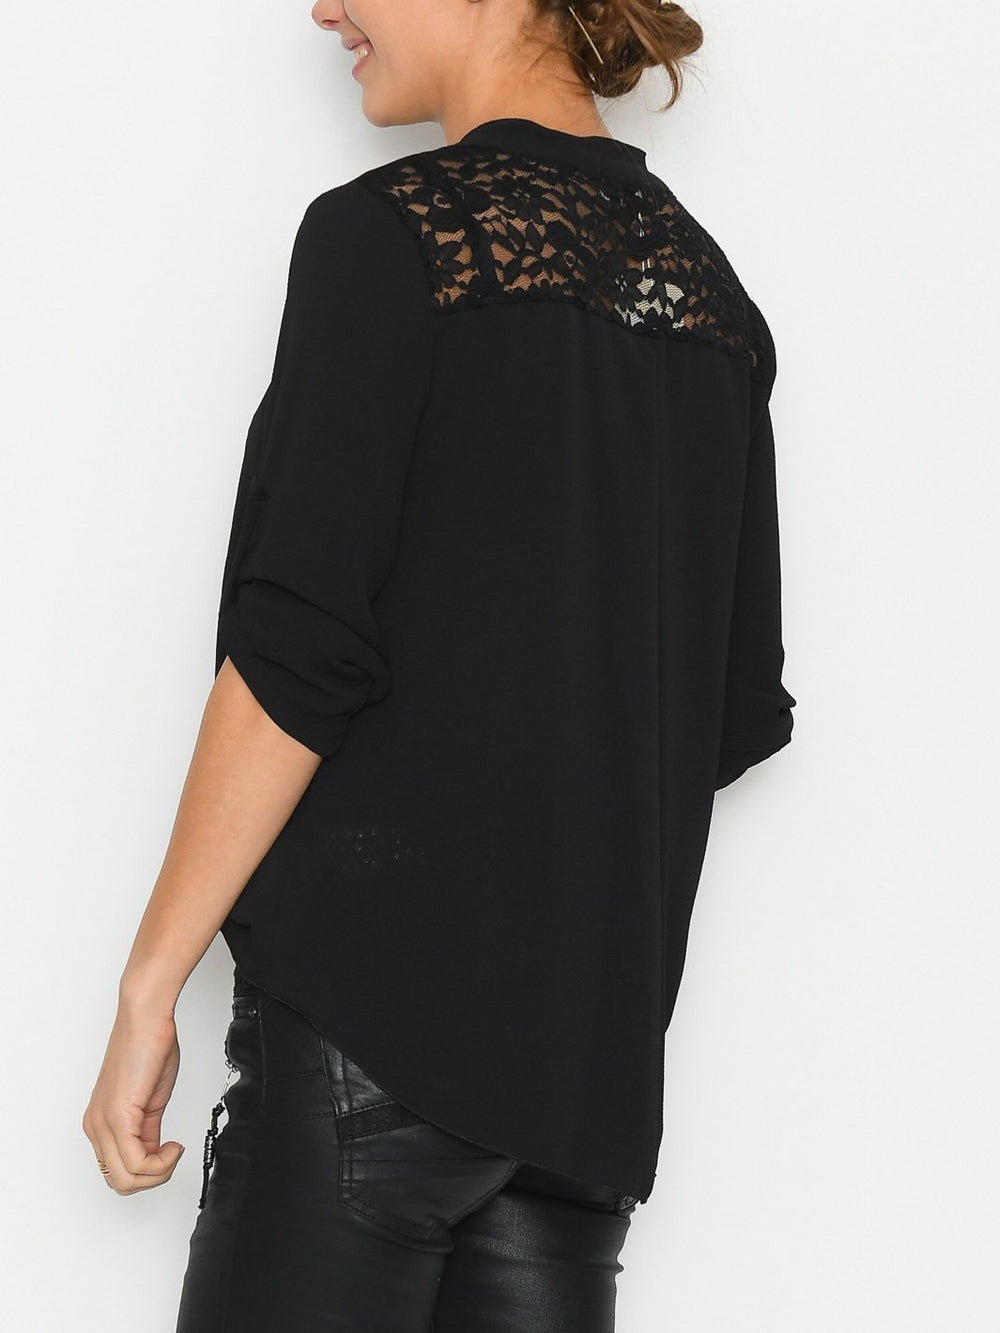 Scarlett blouse black - Online-Mode